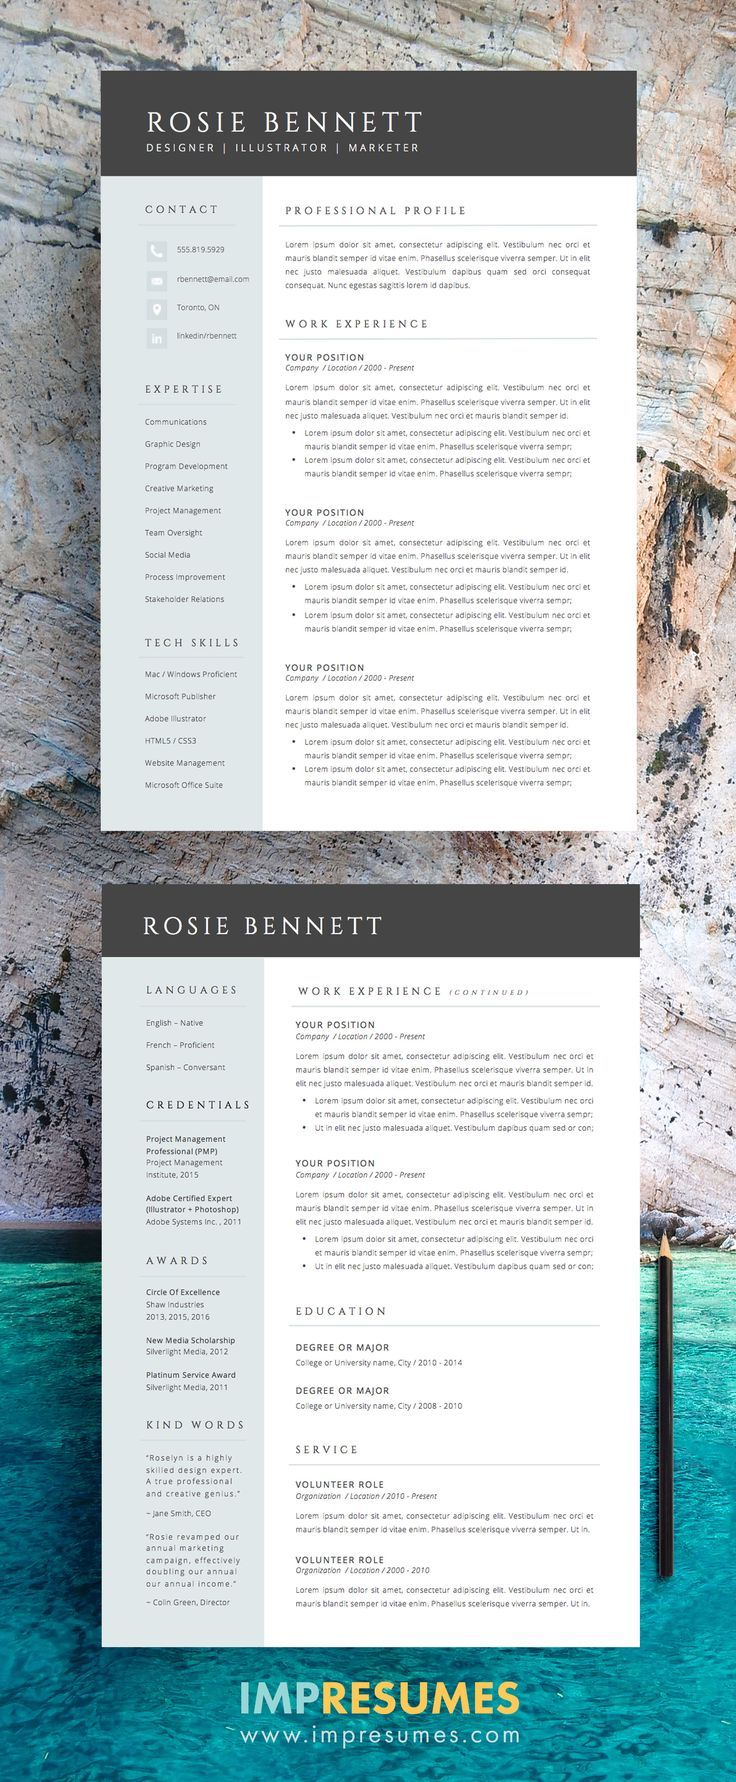 Recruiters Resume Of 4 Page Resume Template Package for Word the Rosie